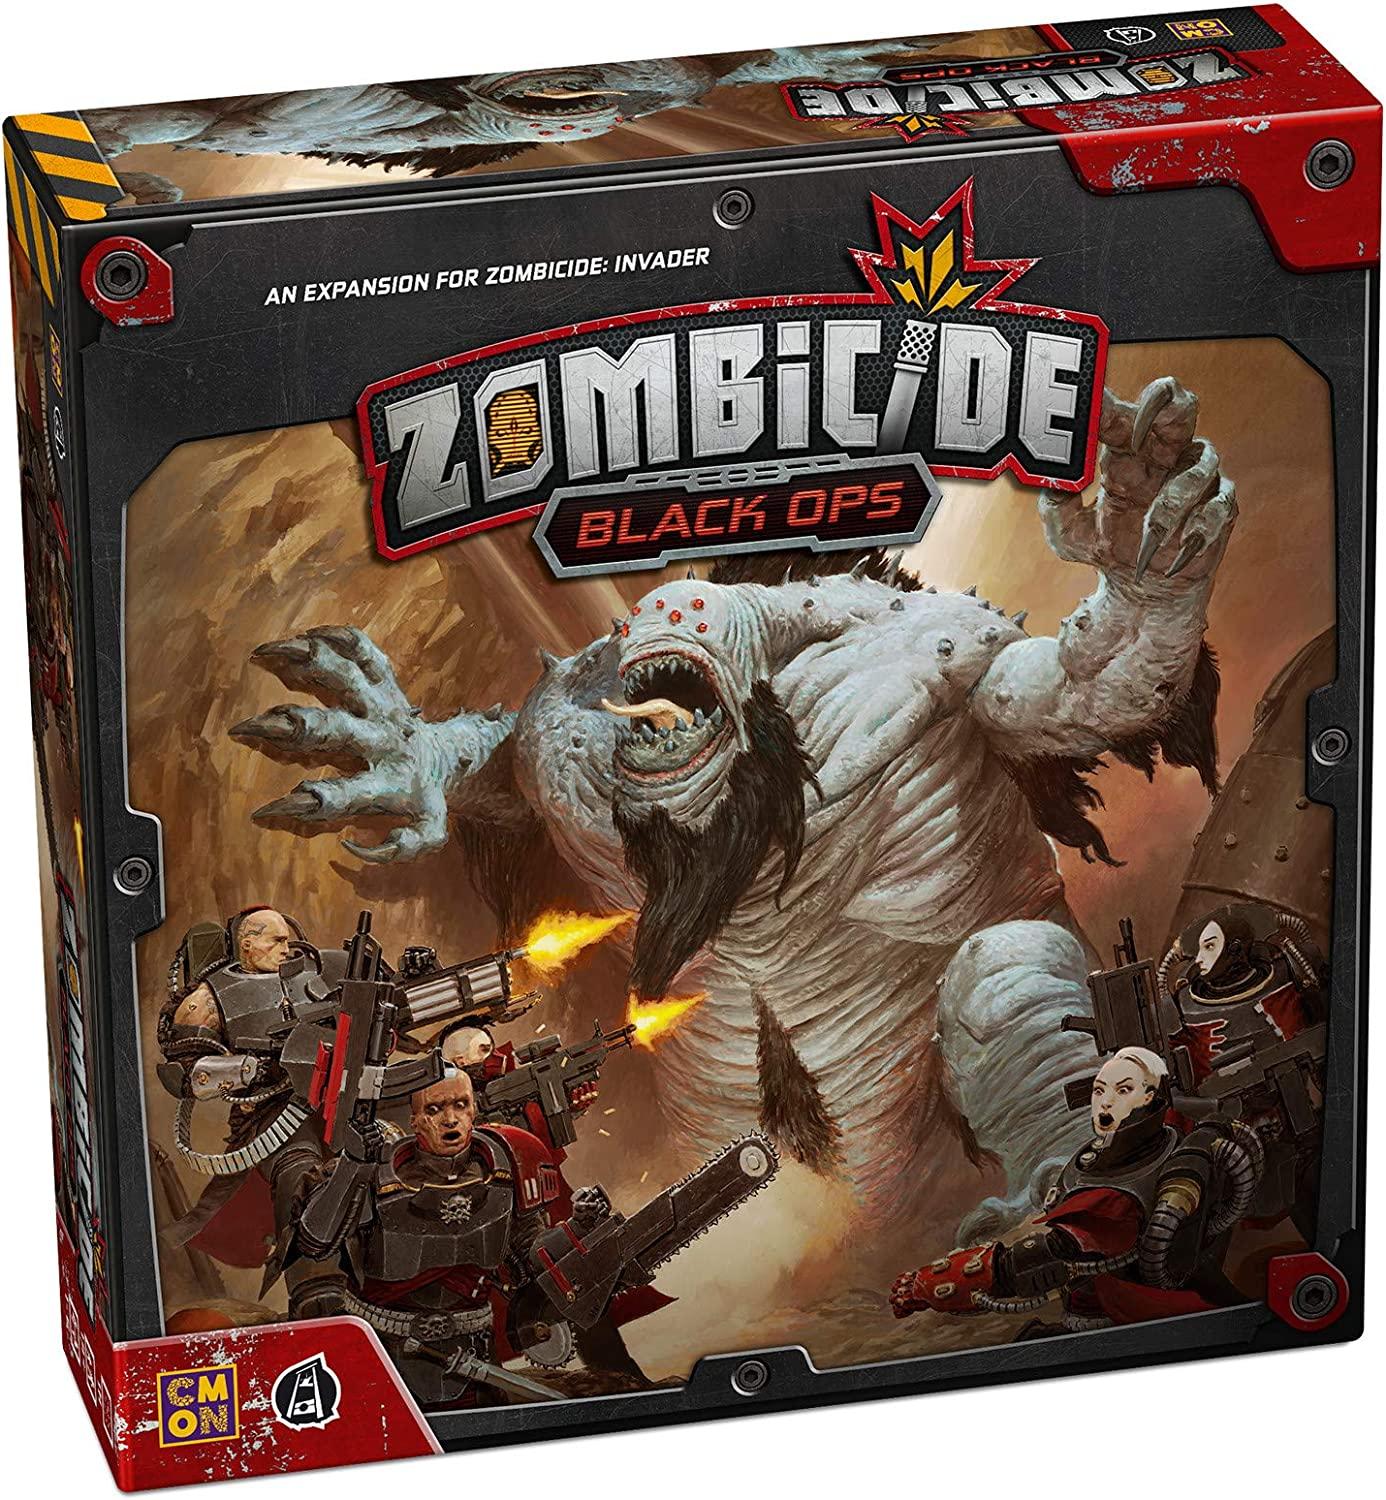 CoolMiniOrNot GUGZCS002 Black Ops: Zombicide Invader, Mixed Colours: Amazon.es: Juguetes y juegos